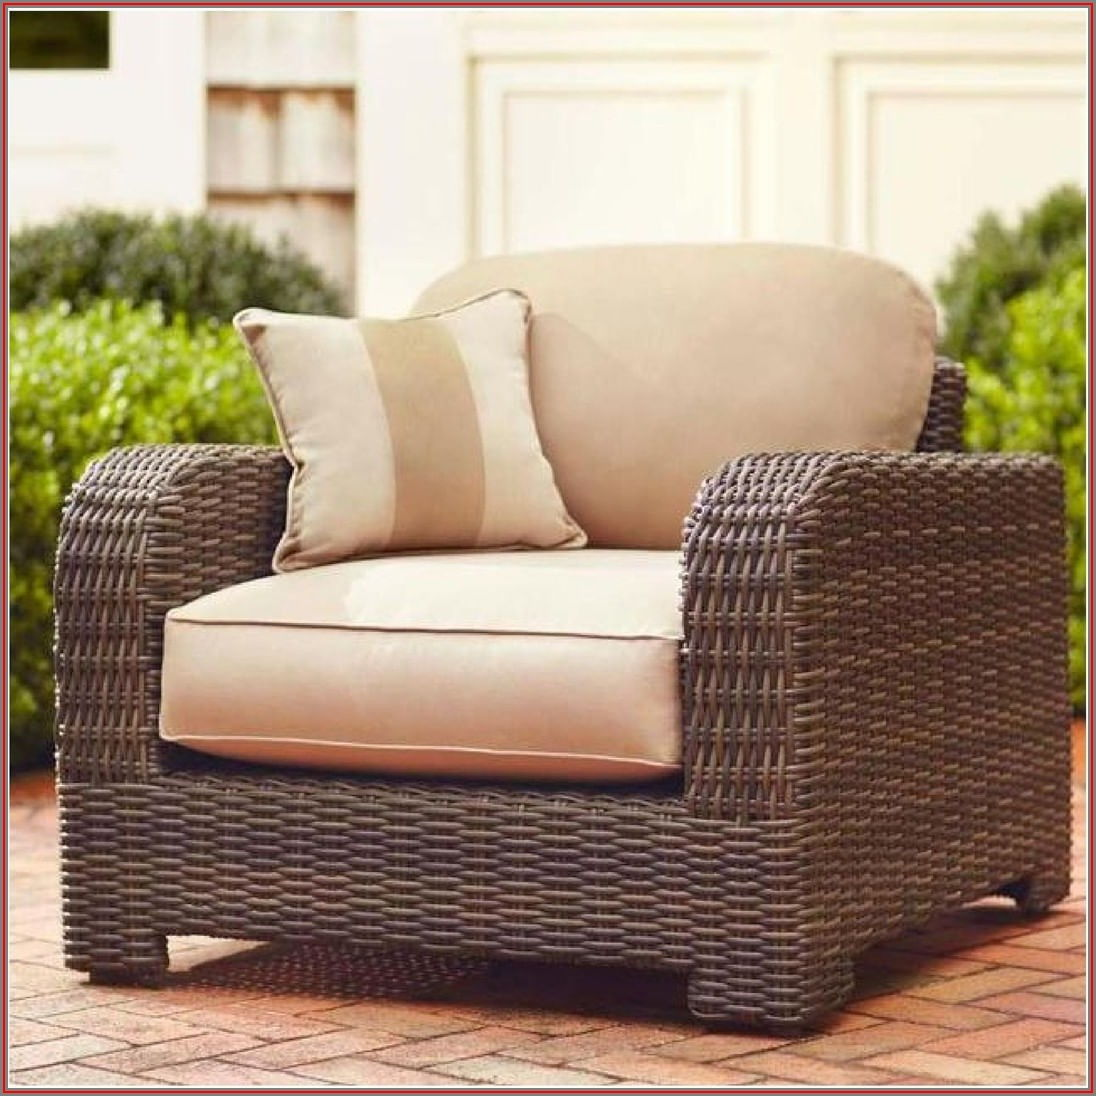 Brown Jordan Northshore Patio Furniture